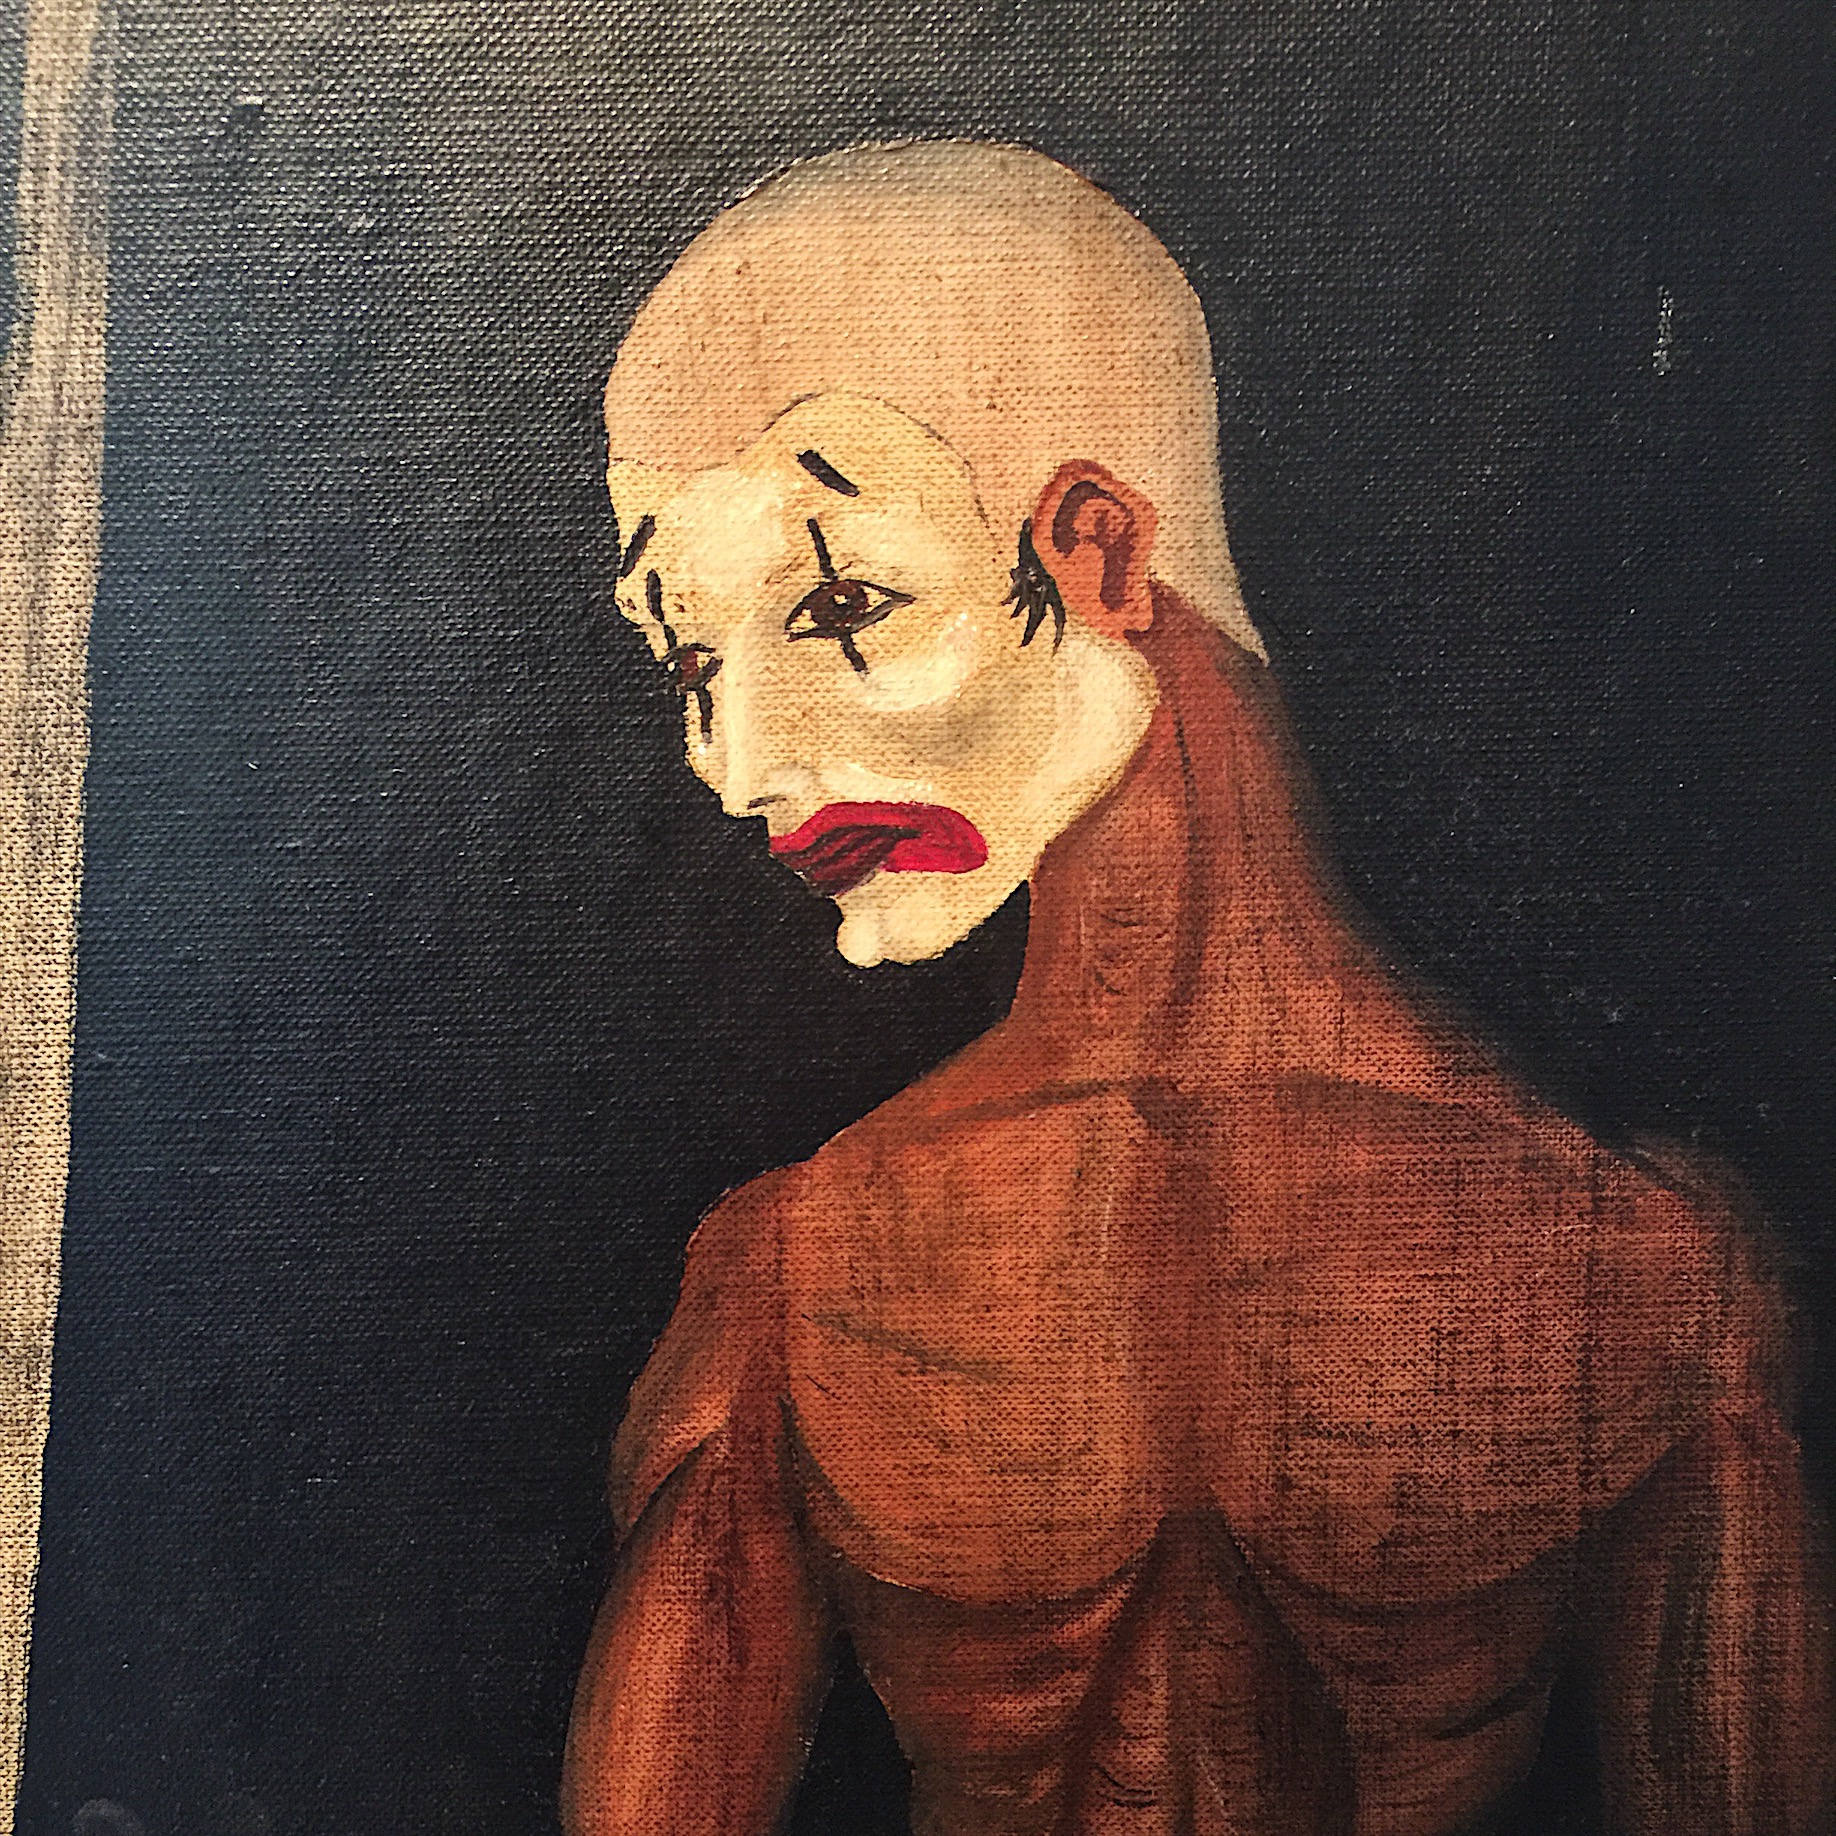 Vintage Creepy Painting of Clown Mime - Signed - 1950s? - Mystery Artist - Morbid Painting - Oil on Canvas Board - The Crow - Outside Art